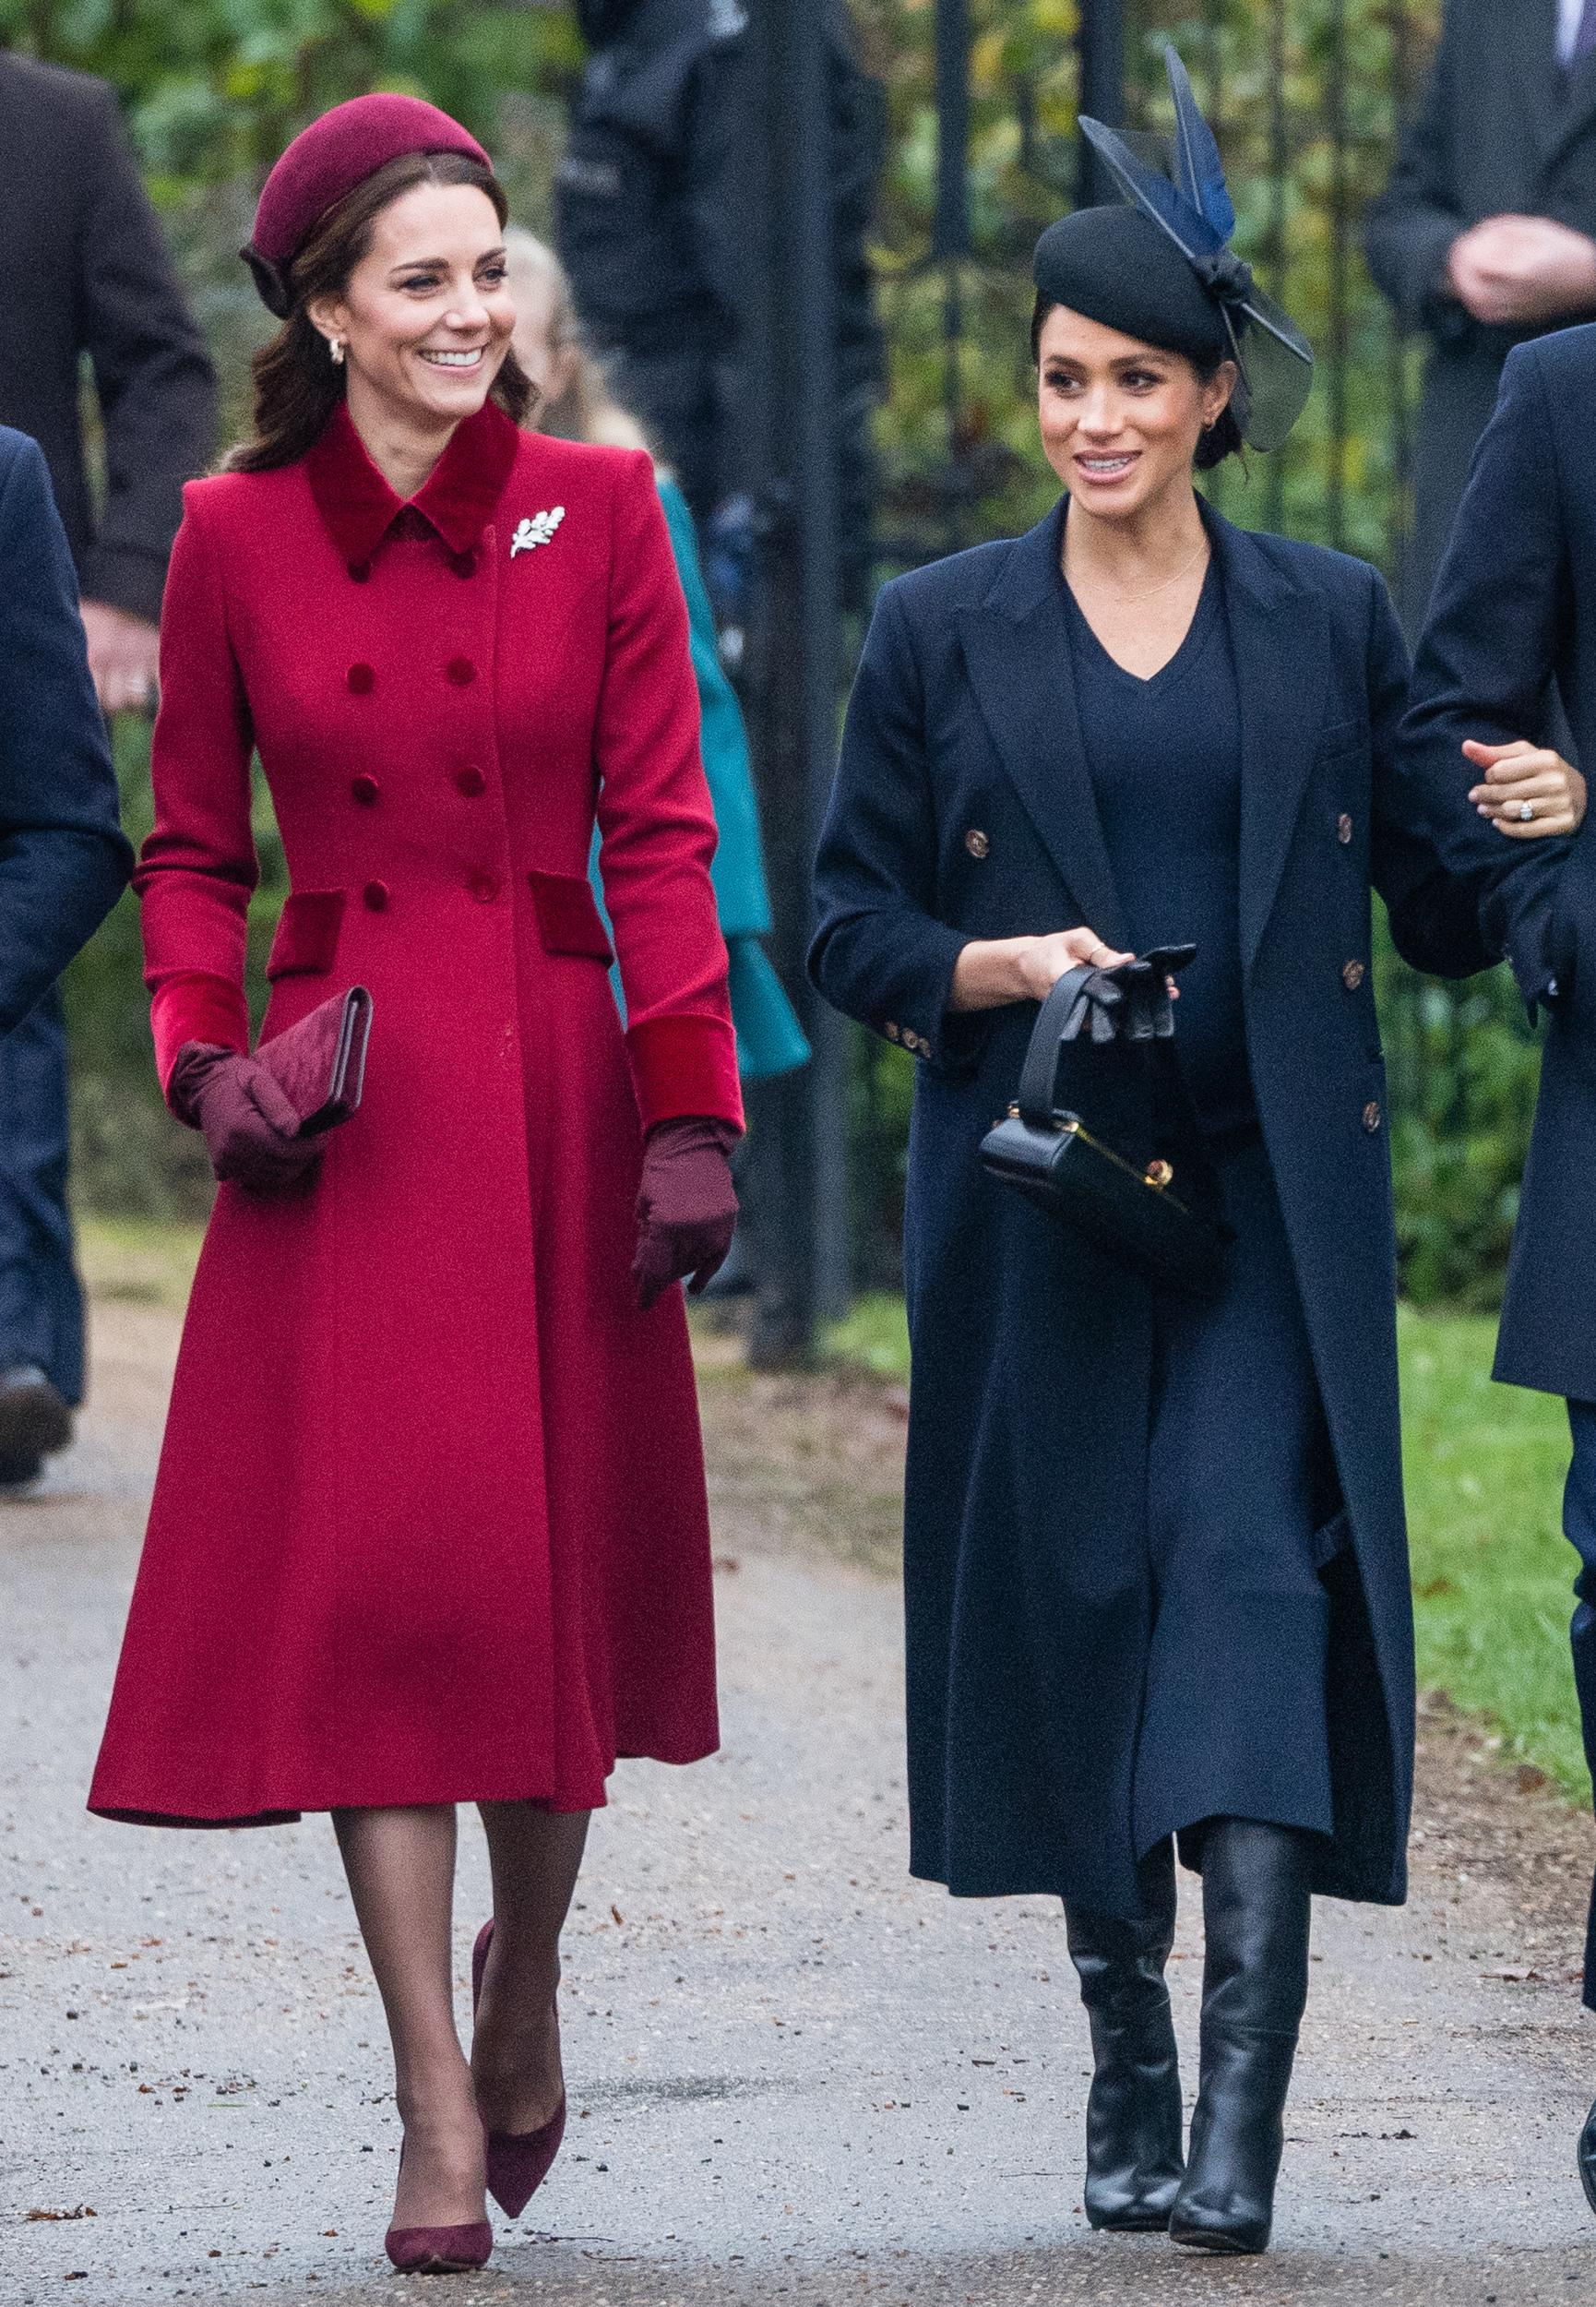 KING'S LYNN, ENGLAND - DECEMBER 25: Catherine, Duchess of Cambridge and Meghan, Duchess of Sussex attend Christmas Day Church service at Church of St Mary Magdalene on the Sandringham estate on December 25, 2018 in King's Lynn, England. (Photo by Samir Hussein/Samir Hussein/WireImage)